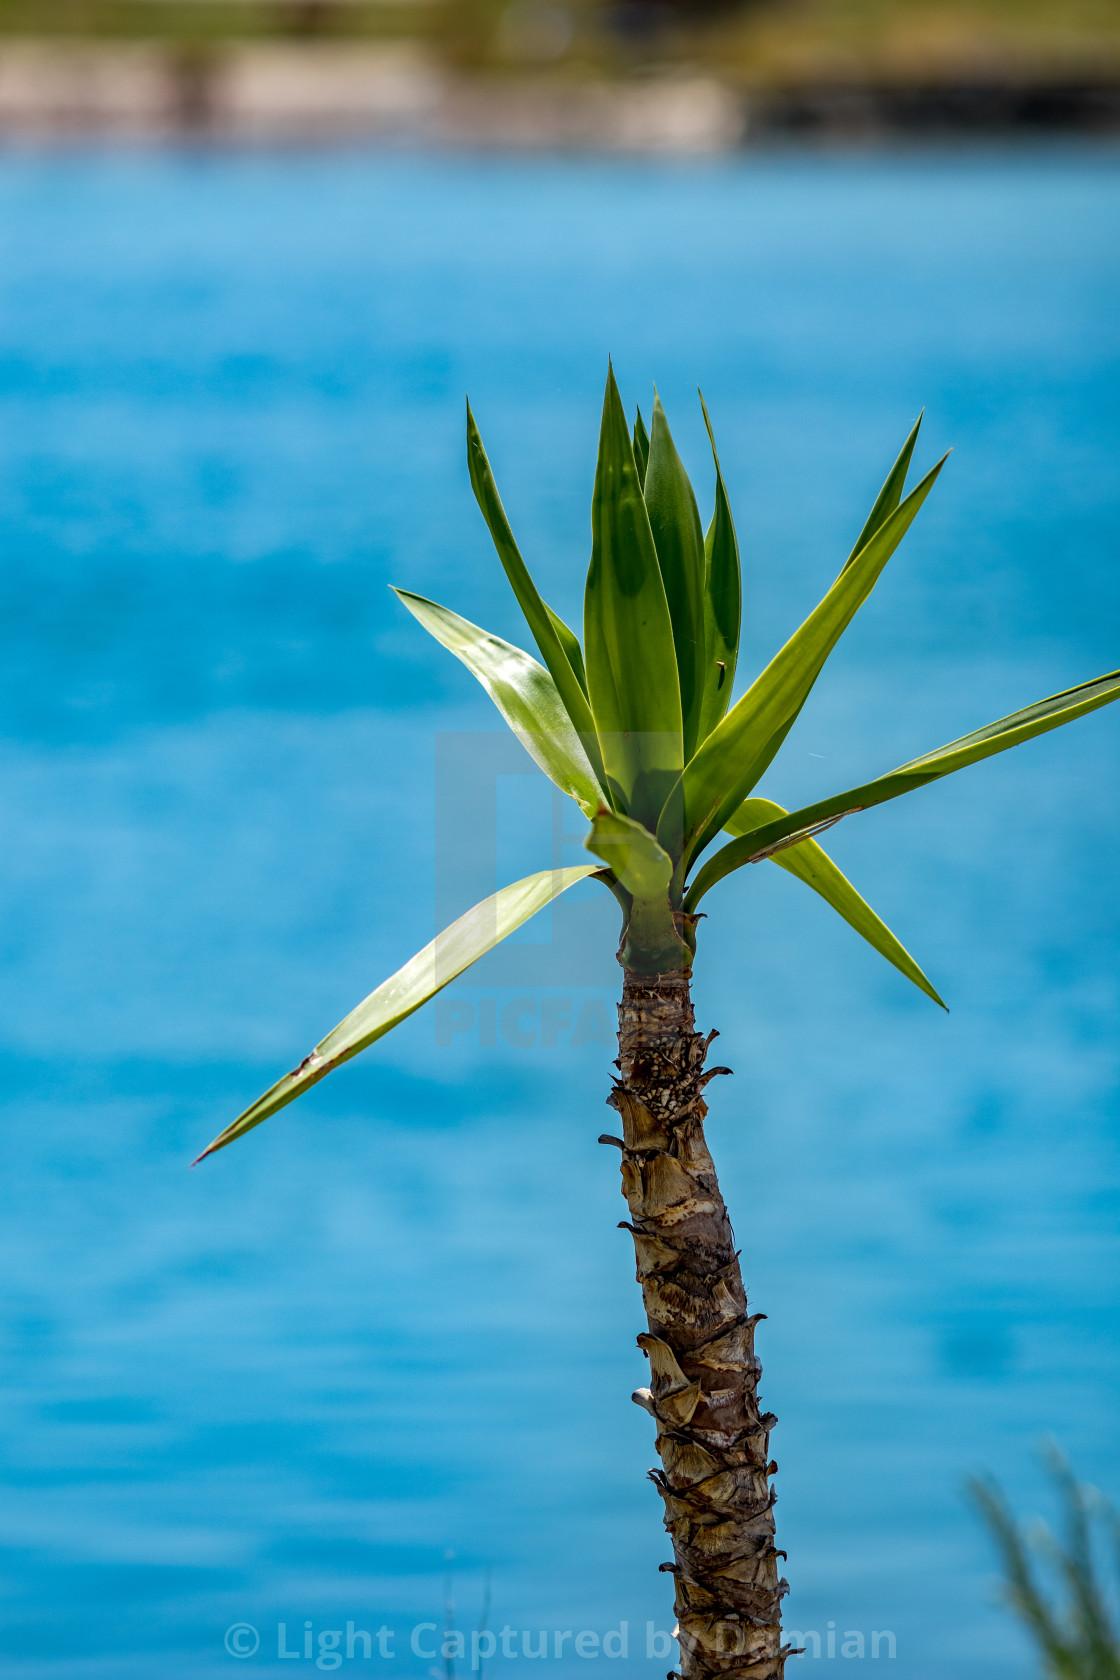 """""""Young palm tree blurred blue lagoon background"""" stock image"""